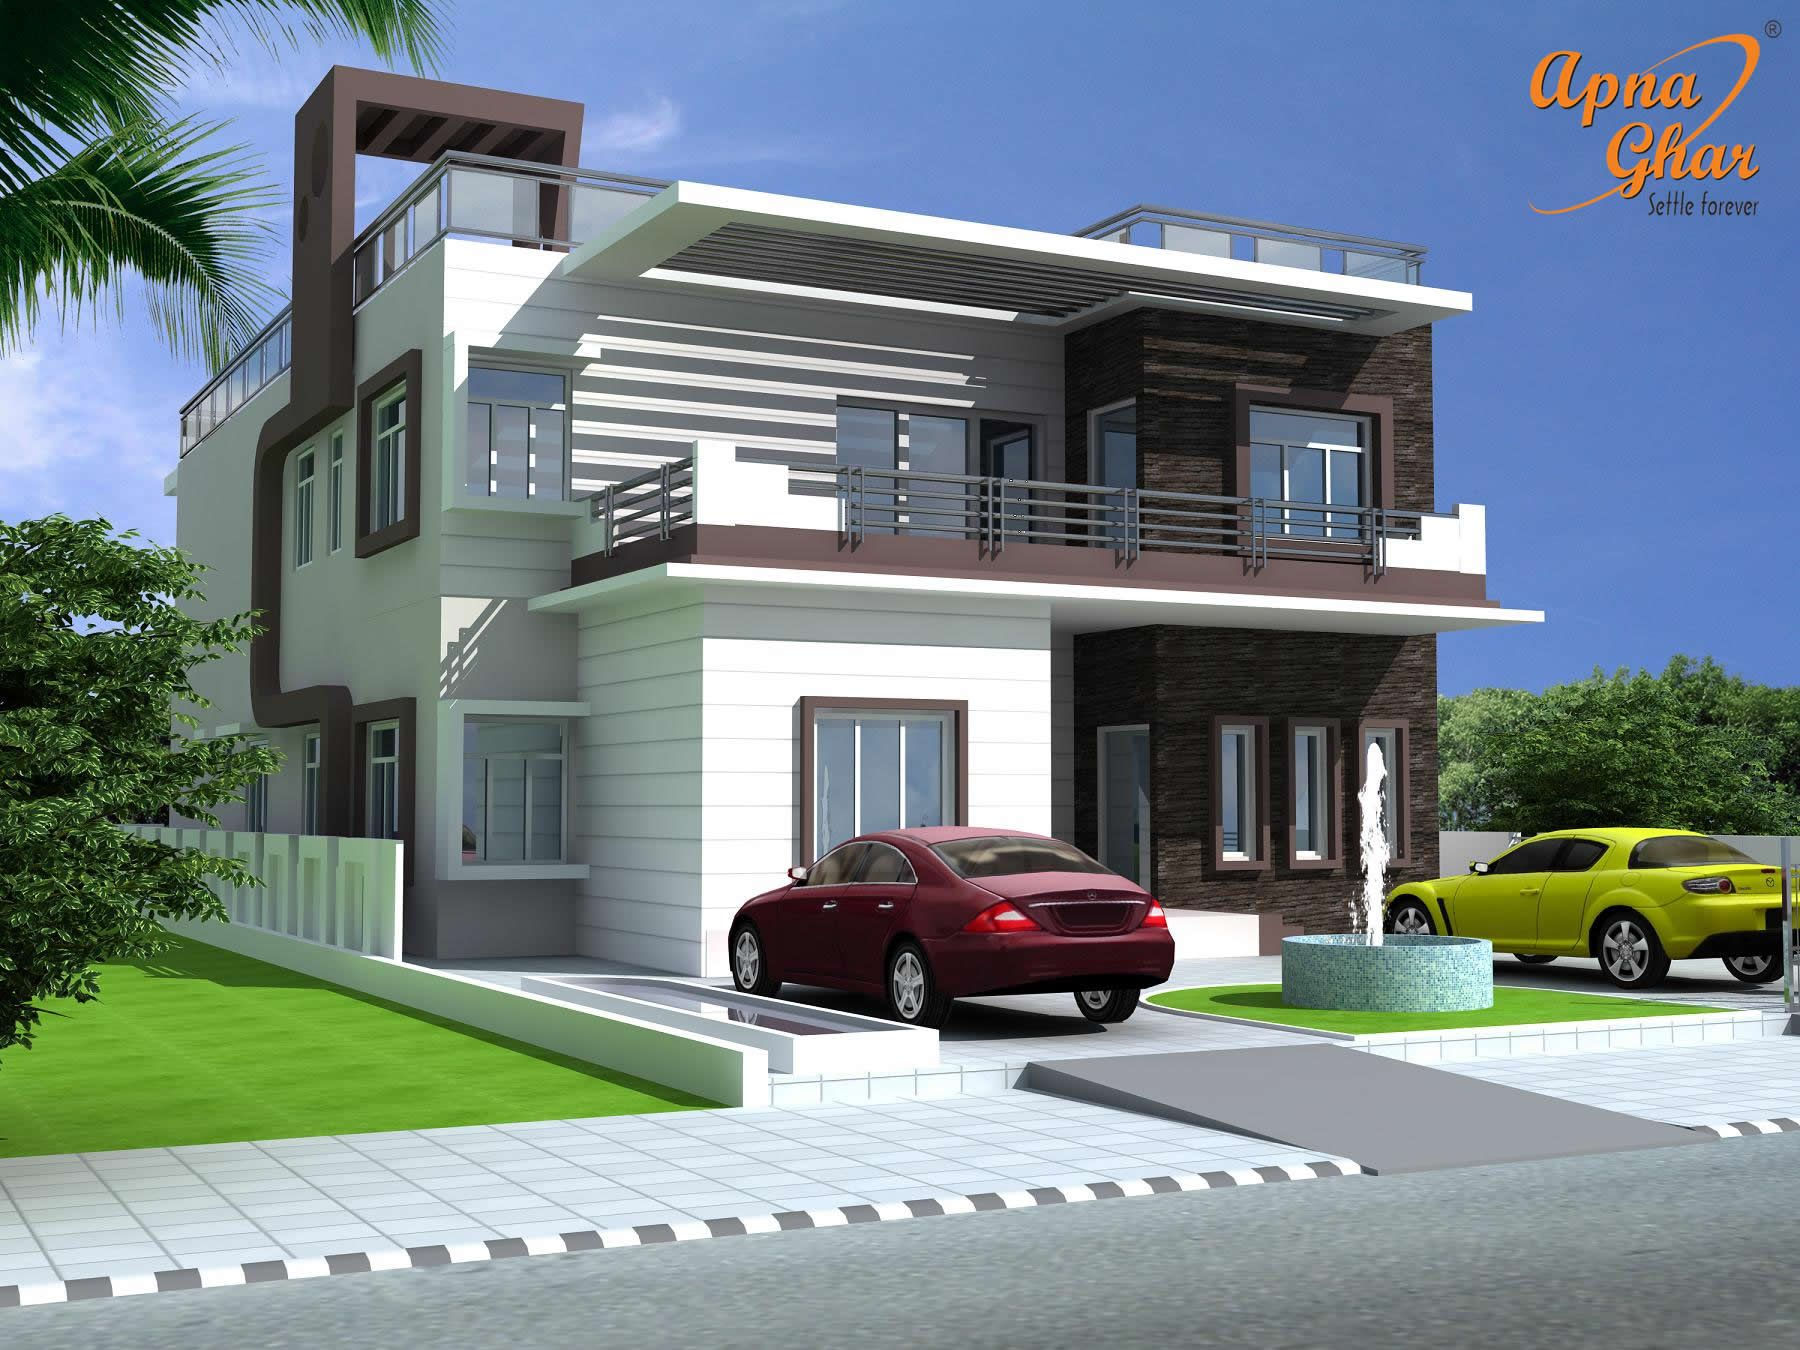 6 bedrooms duplex house design in 390m2 13m x 30m click for Duplex houseplans